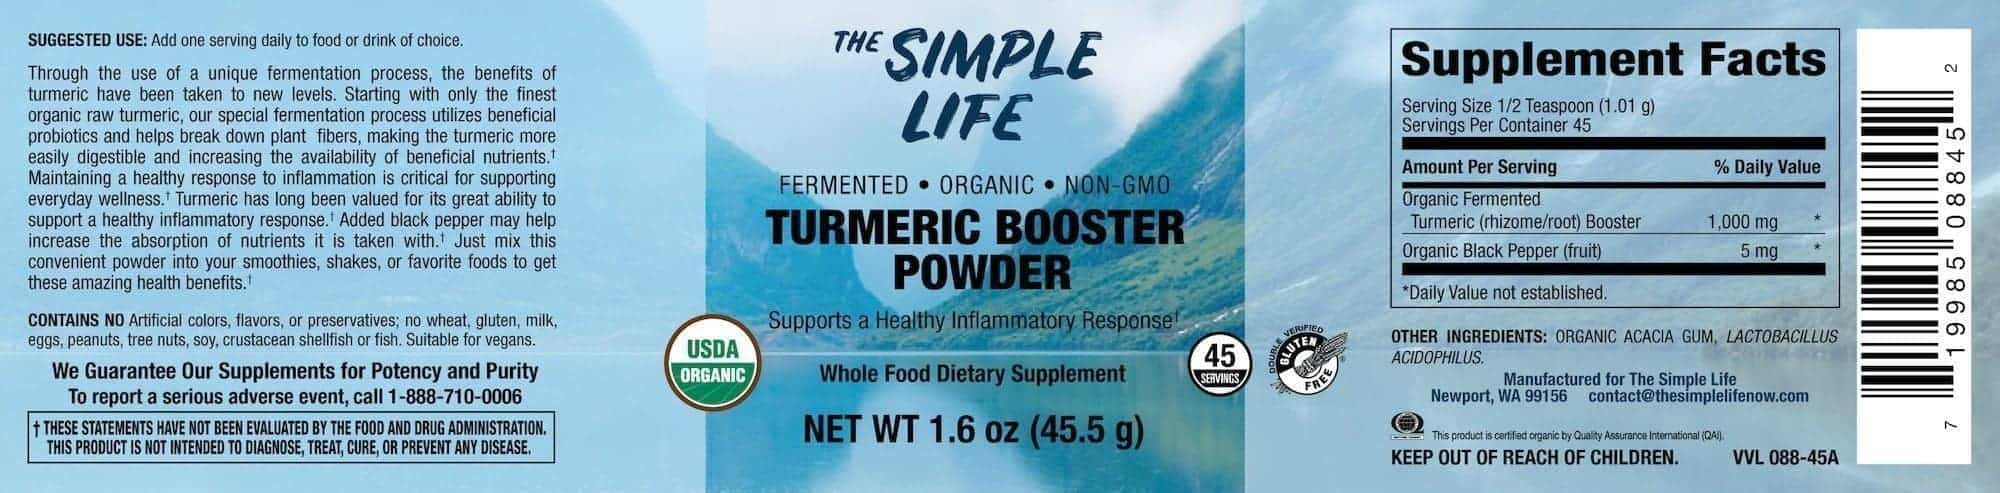 Organic Fermented Turmeric Powder Label